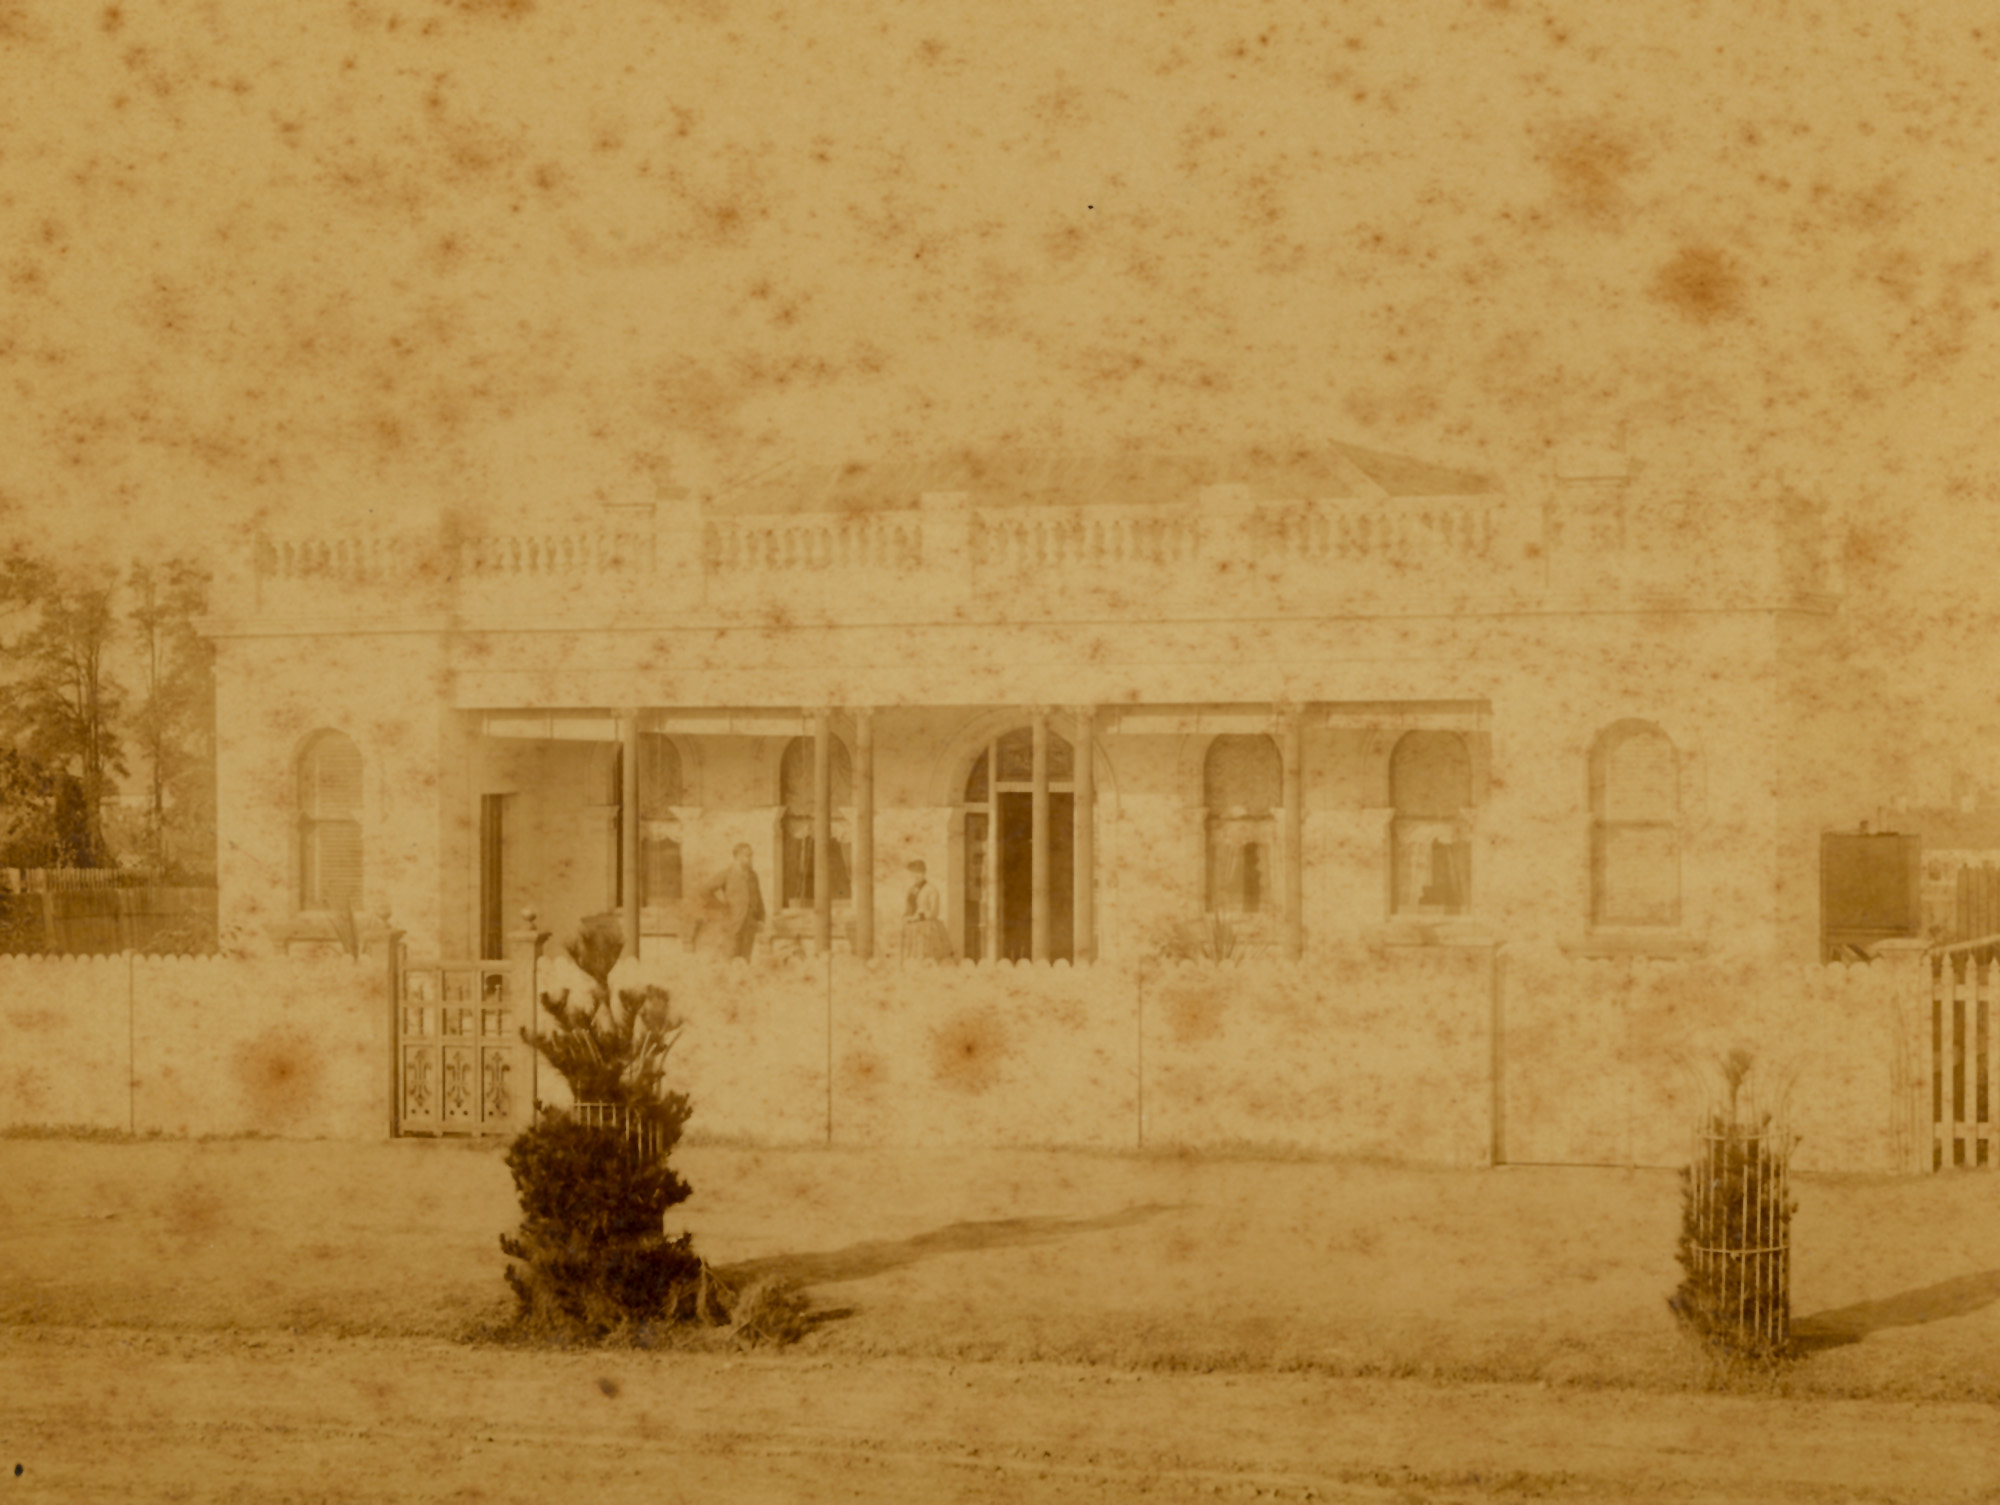 Reliance, Johnston Street Annandale, the home of Alfred Vandyke, ca.1887 / Charles Bayliss